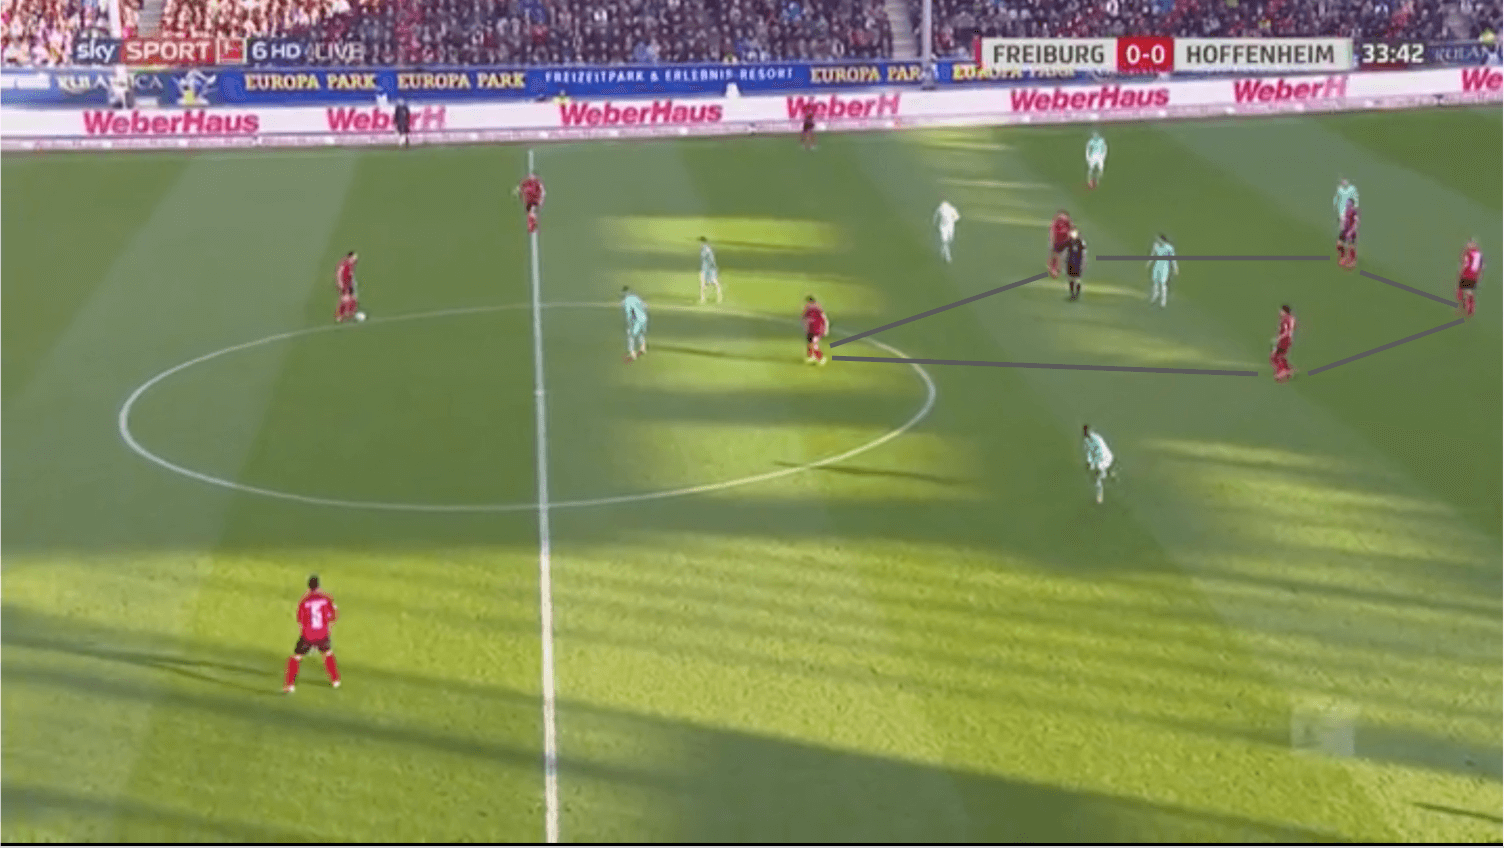 Bundesliga 2019/20: SC Freiburg vs Hoffenheim - tactical analysis tactics